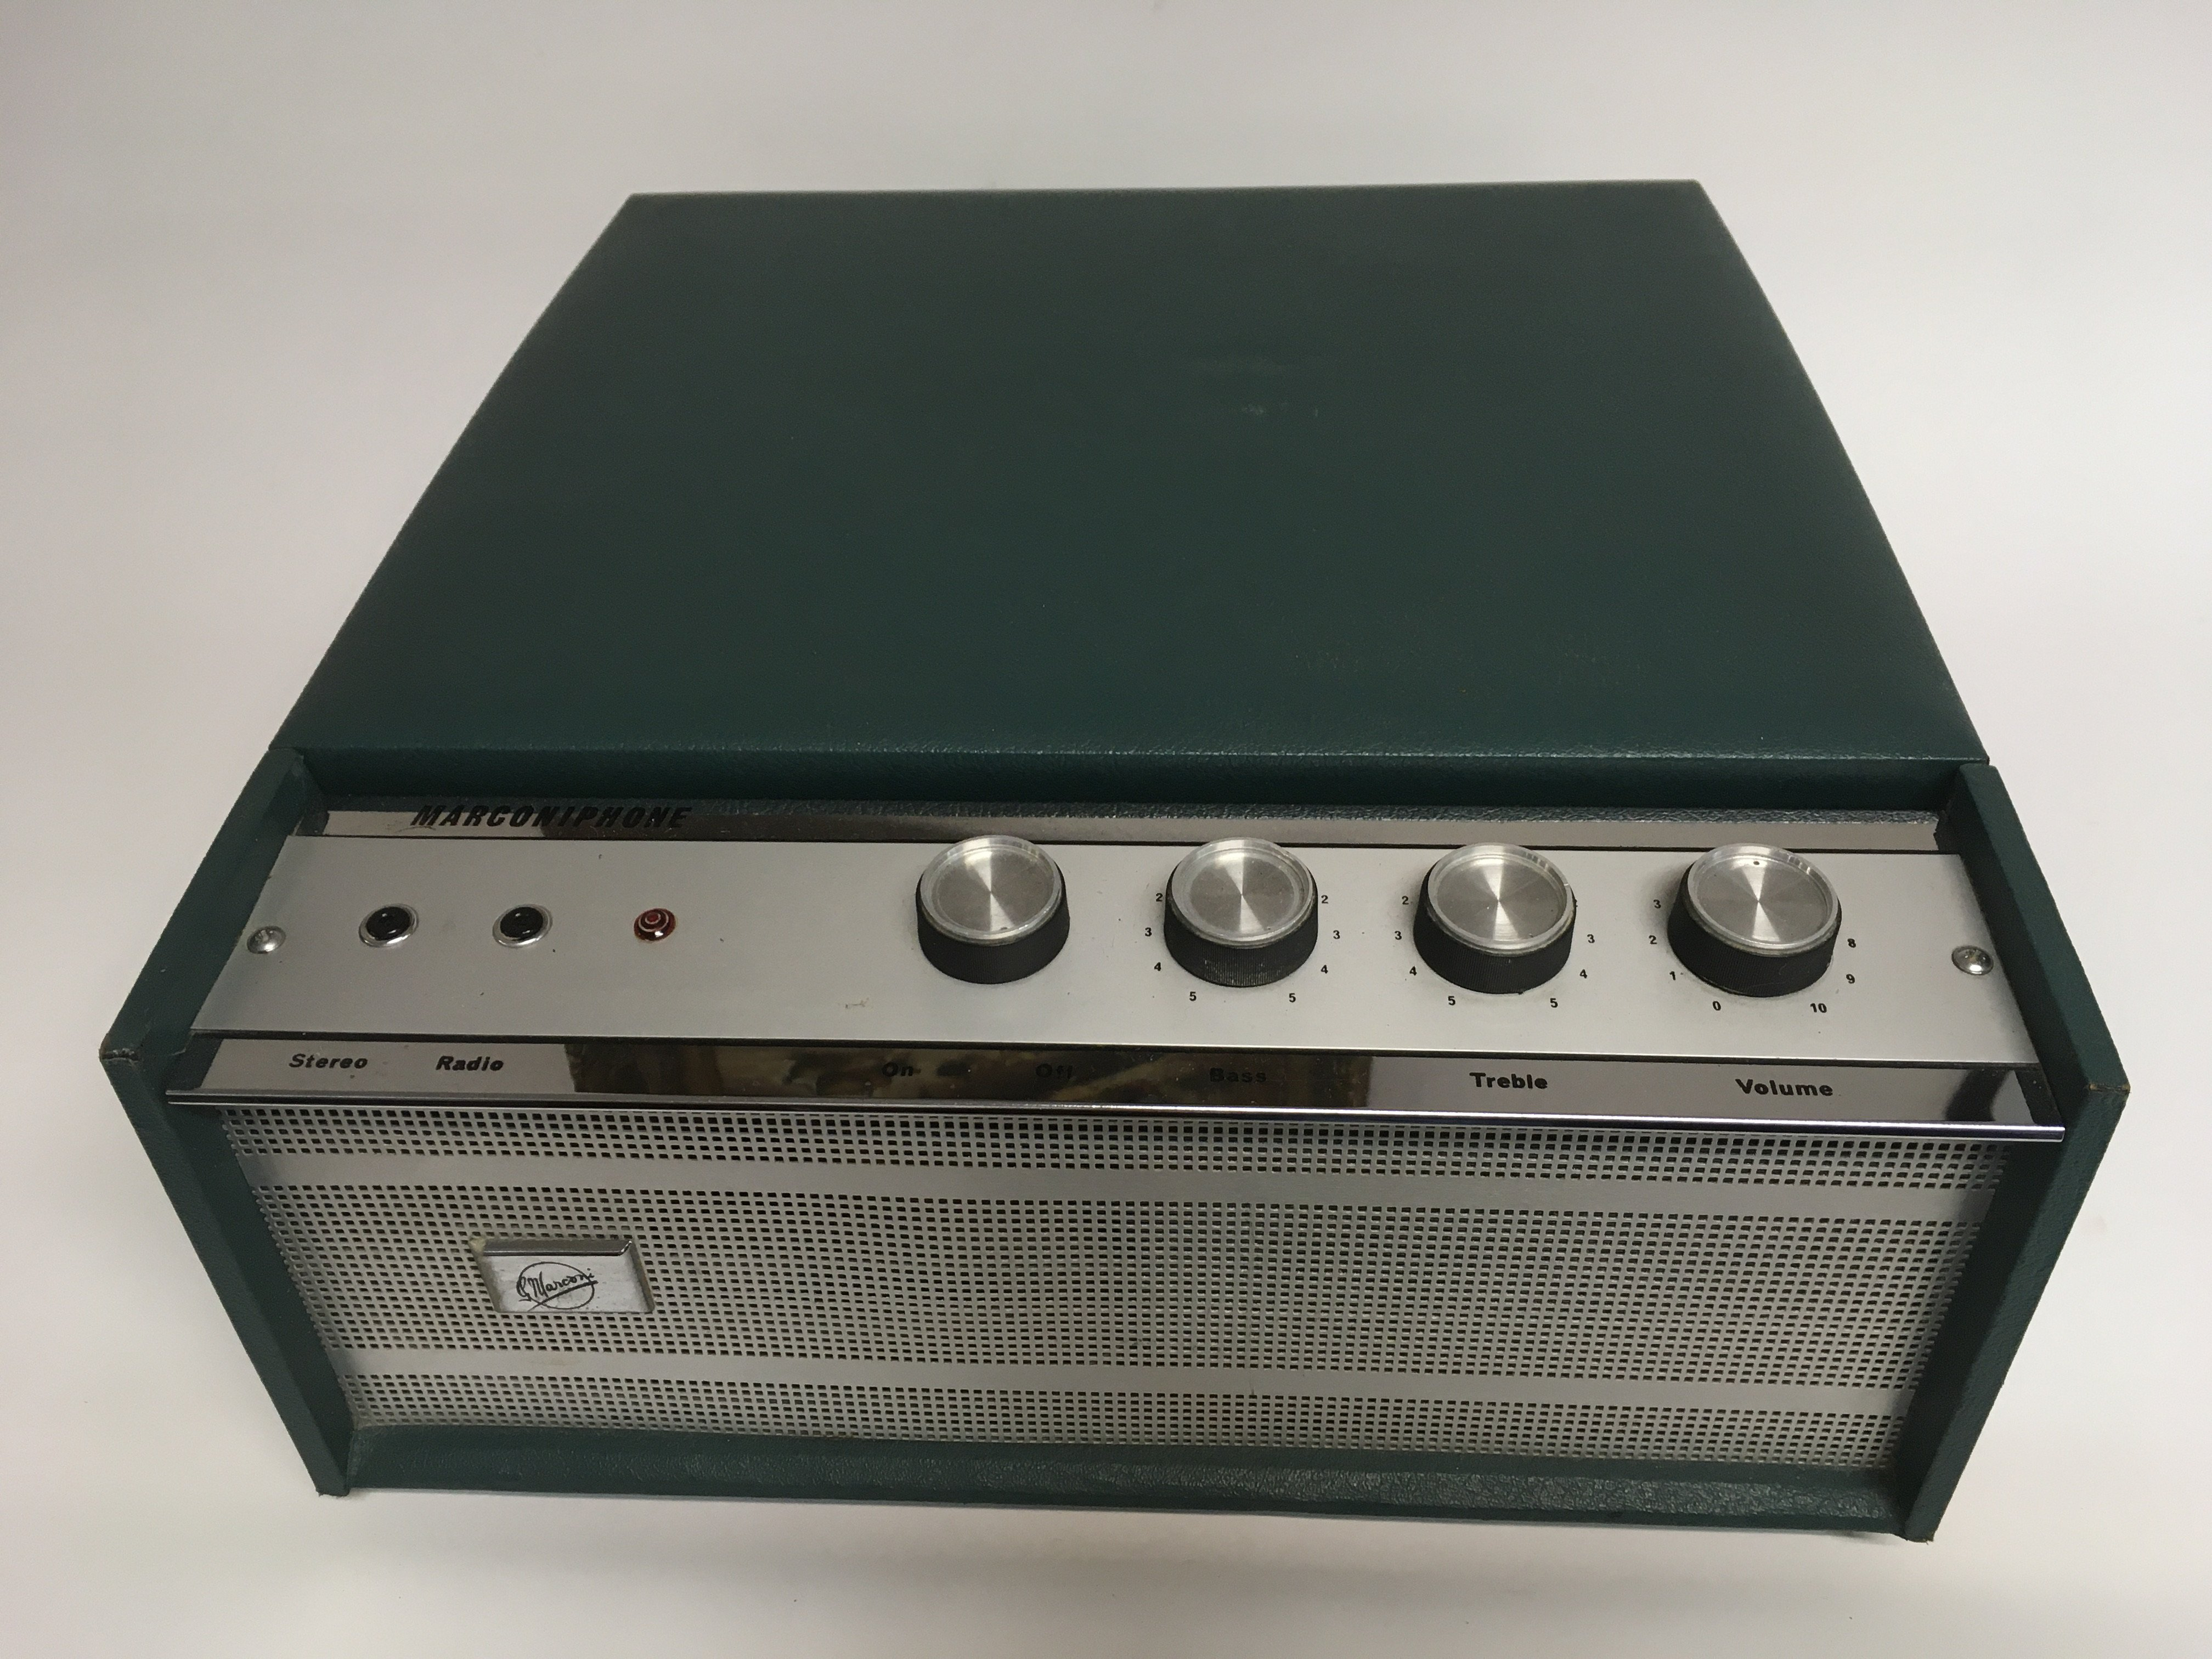 A vintage Marconiphone autochanger record player. - Image 2 of 2